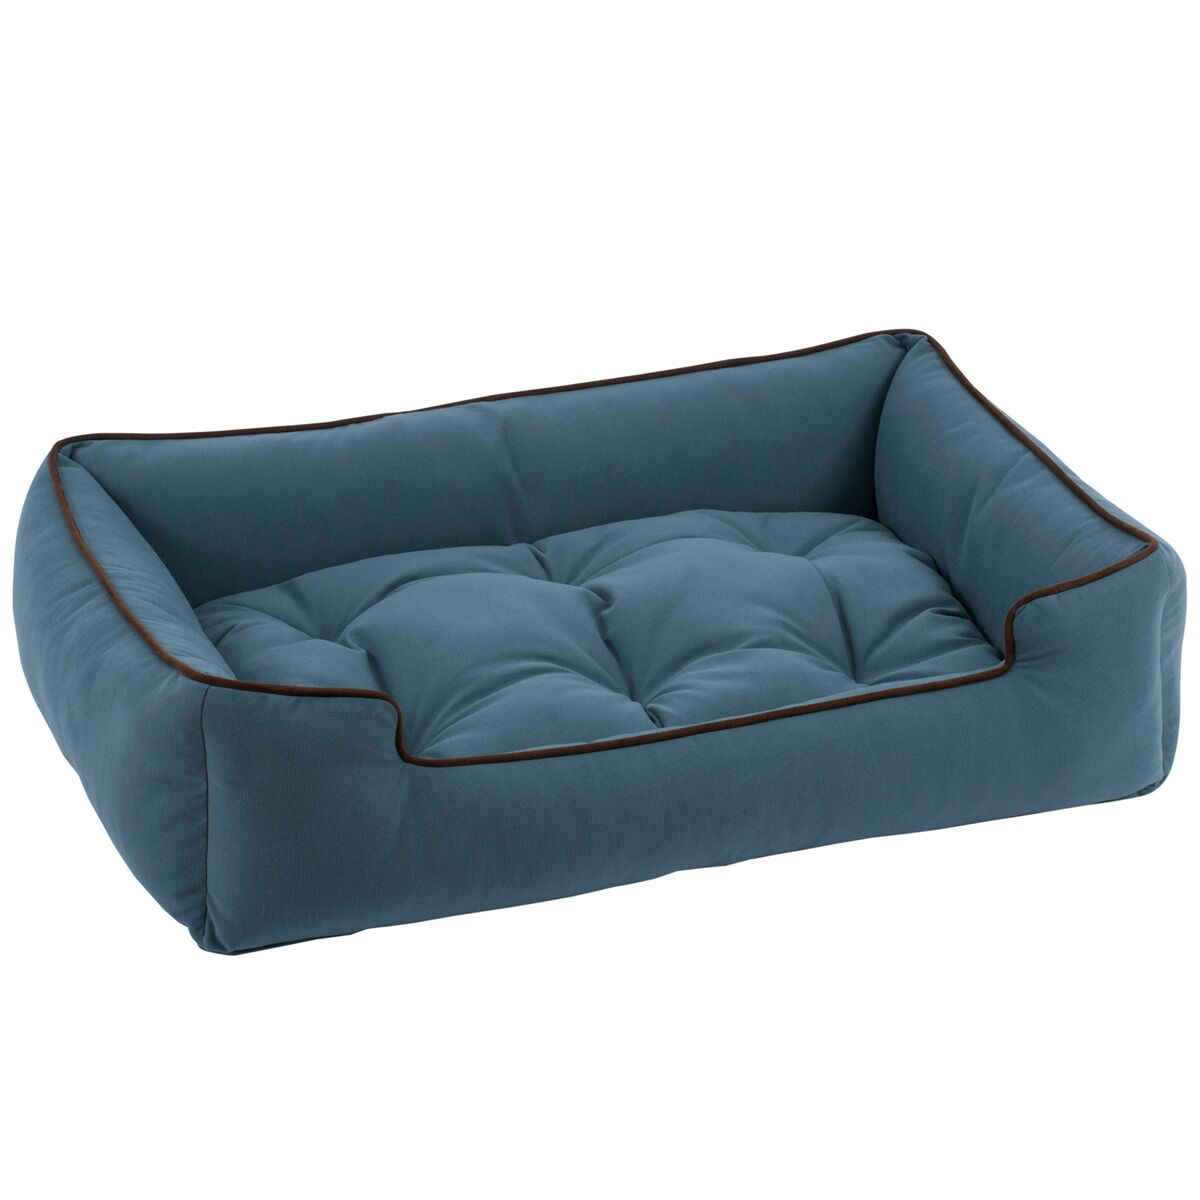 Sleeper Bolster Dog Bed Size: Small (24